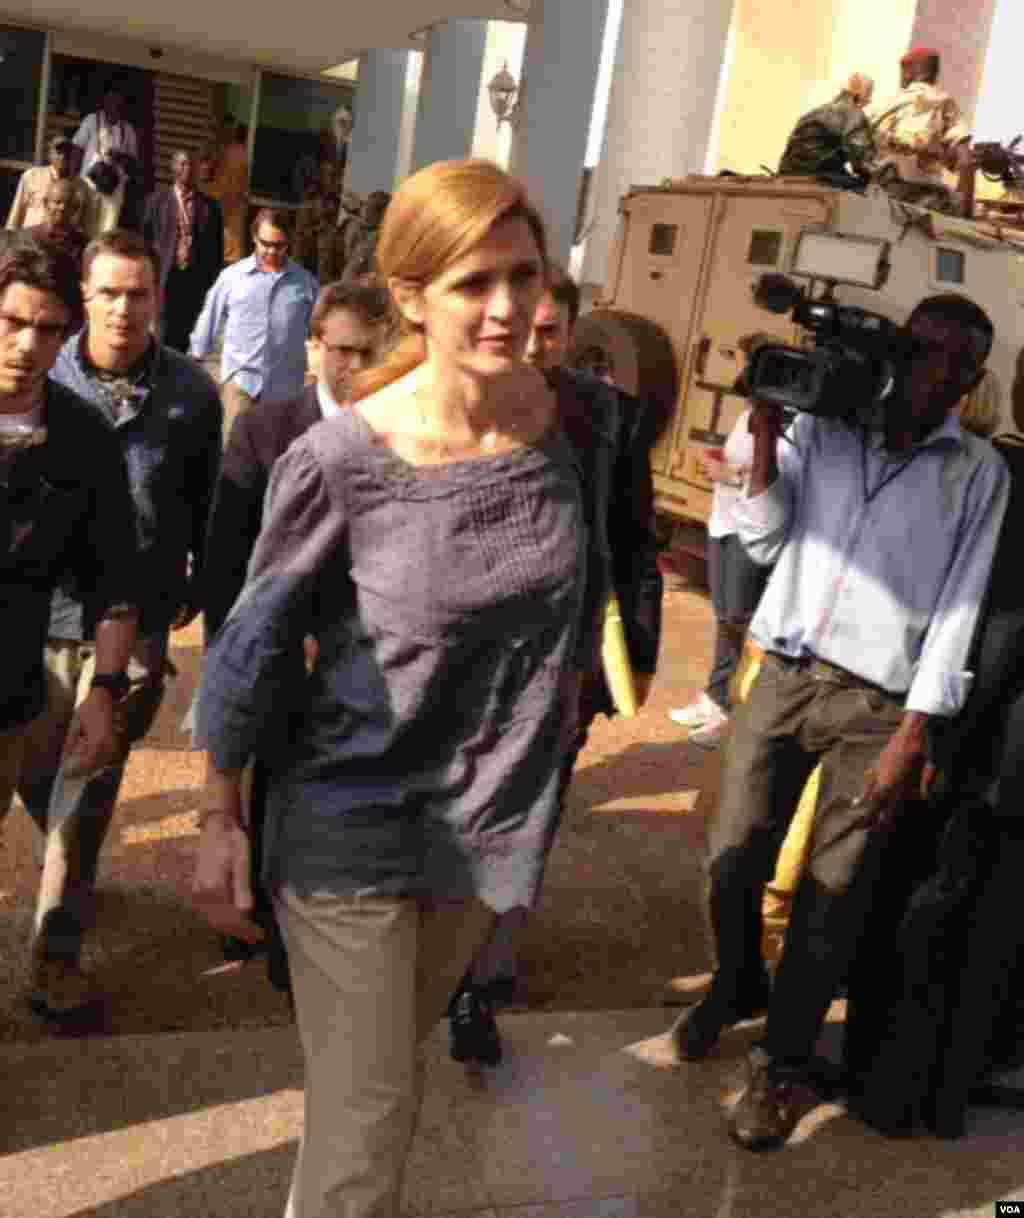 L'ambassadeur américain aux Nations unies, Samantha Power. Photo prise par Idriss Fall.